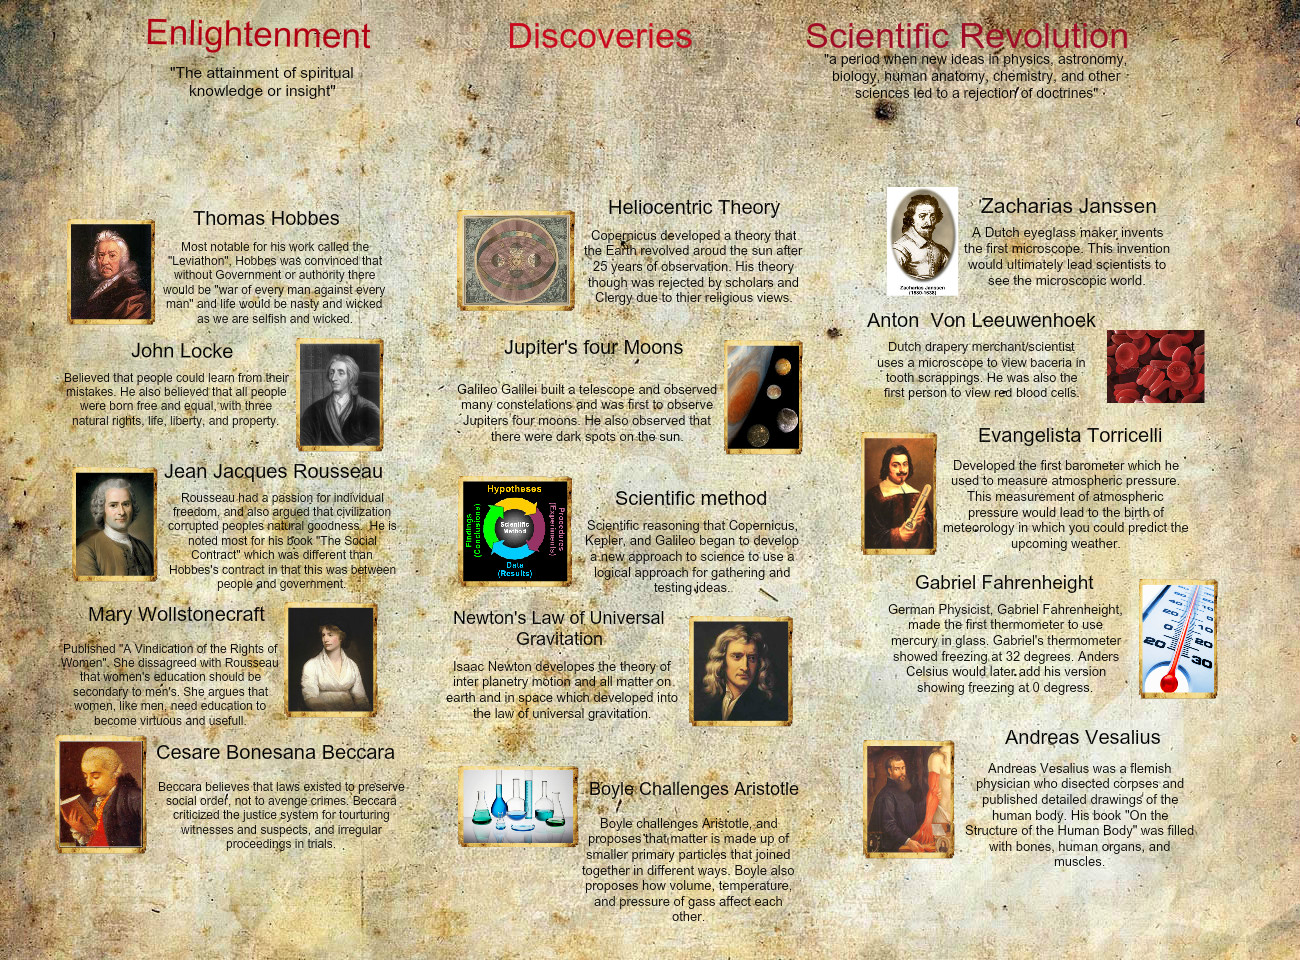 a history of the scientific revolution in the enlightenment era Take a look at the characteristics of the enlightenment period  this era refers to the intellectual enlightenment in european history  and scientific,.